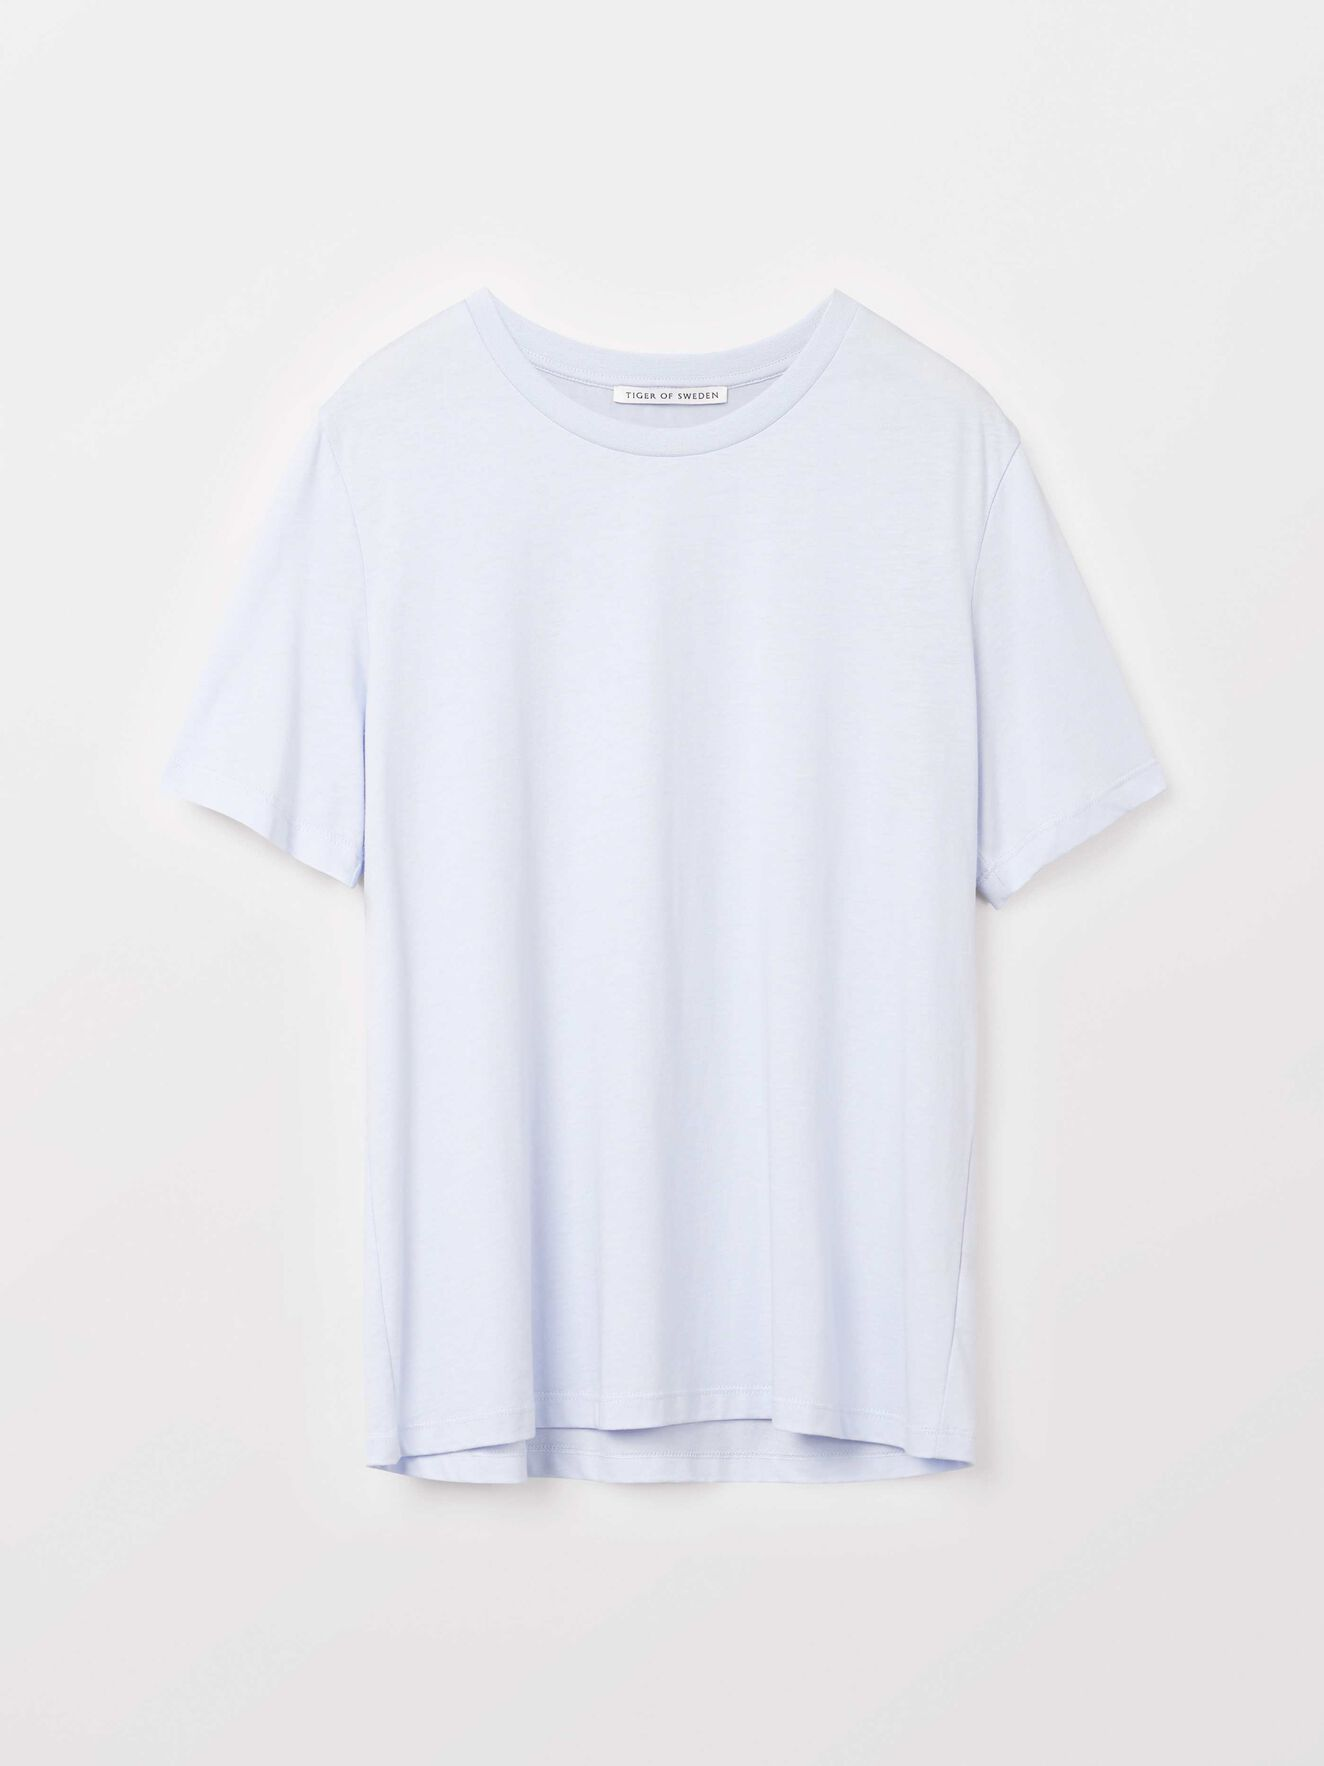 Deira T-Shirt in Sombre Blue from Tiger of Sweden